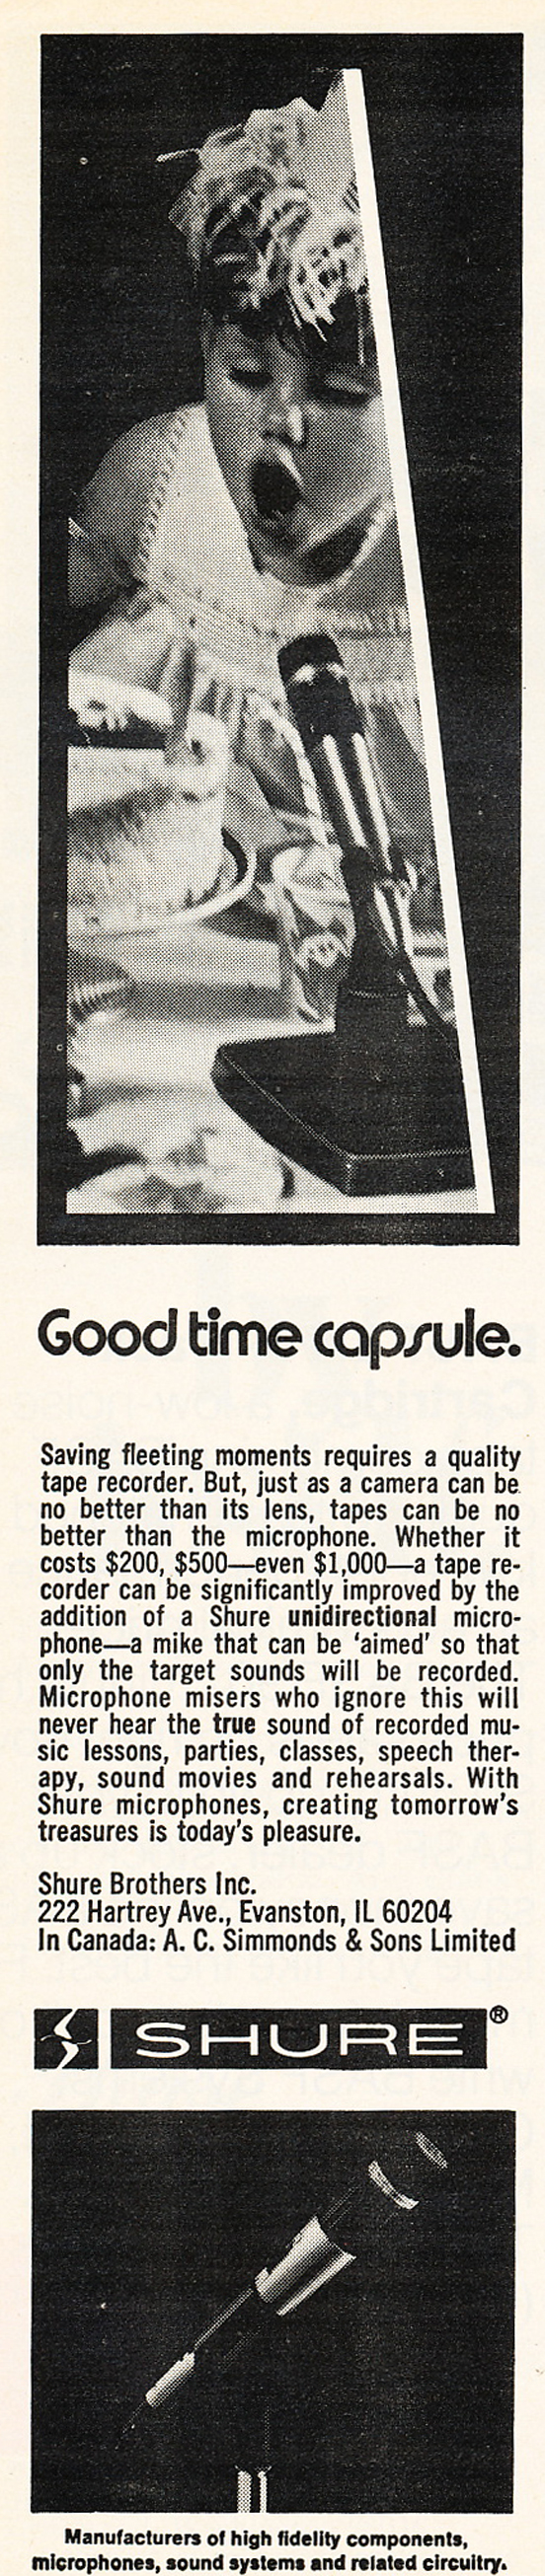 1975 ad for Shure microphones in Reel2ReelTexas.com's vintage recording collection